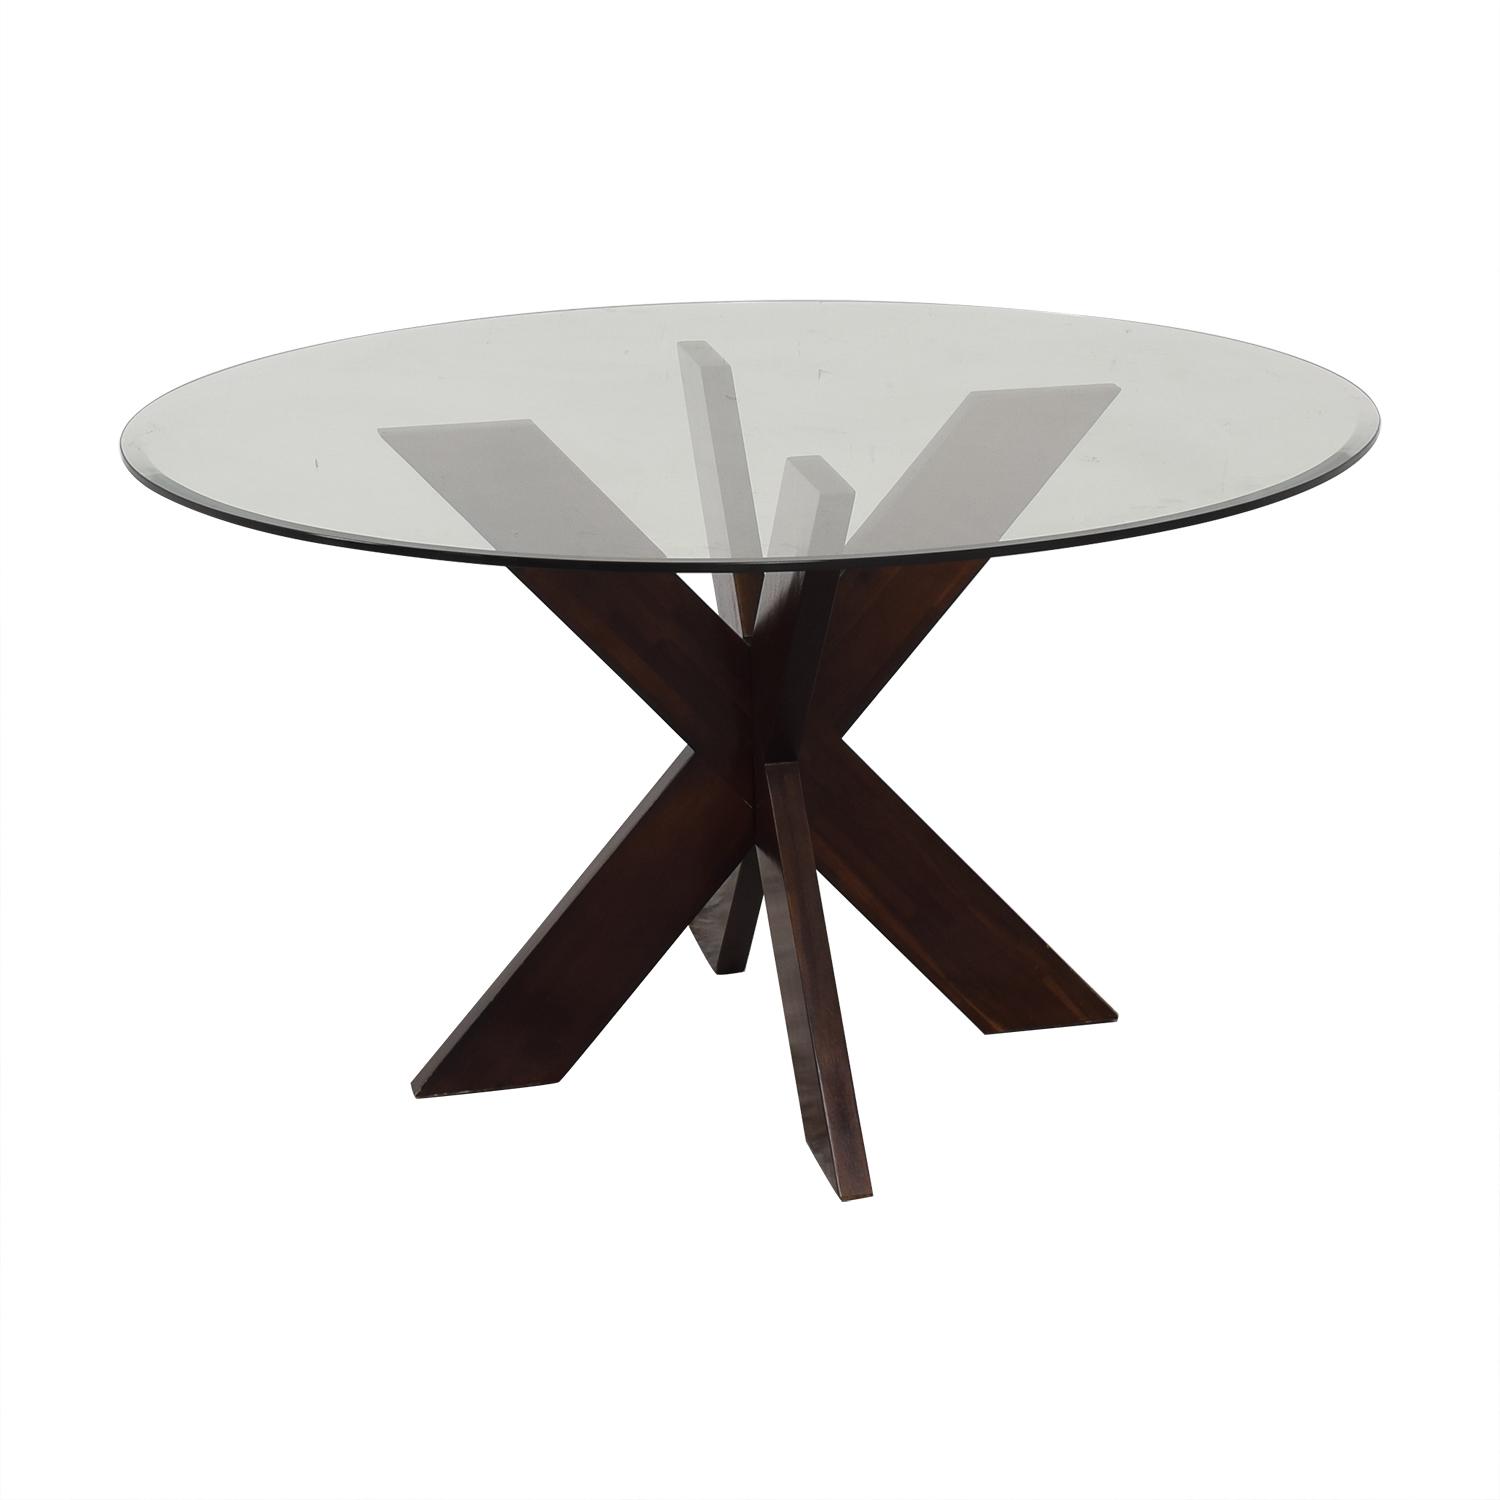 buy Pier 1 X-Base Dining Table with Glass Top Pier 1